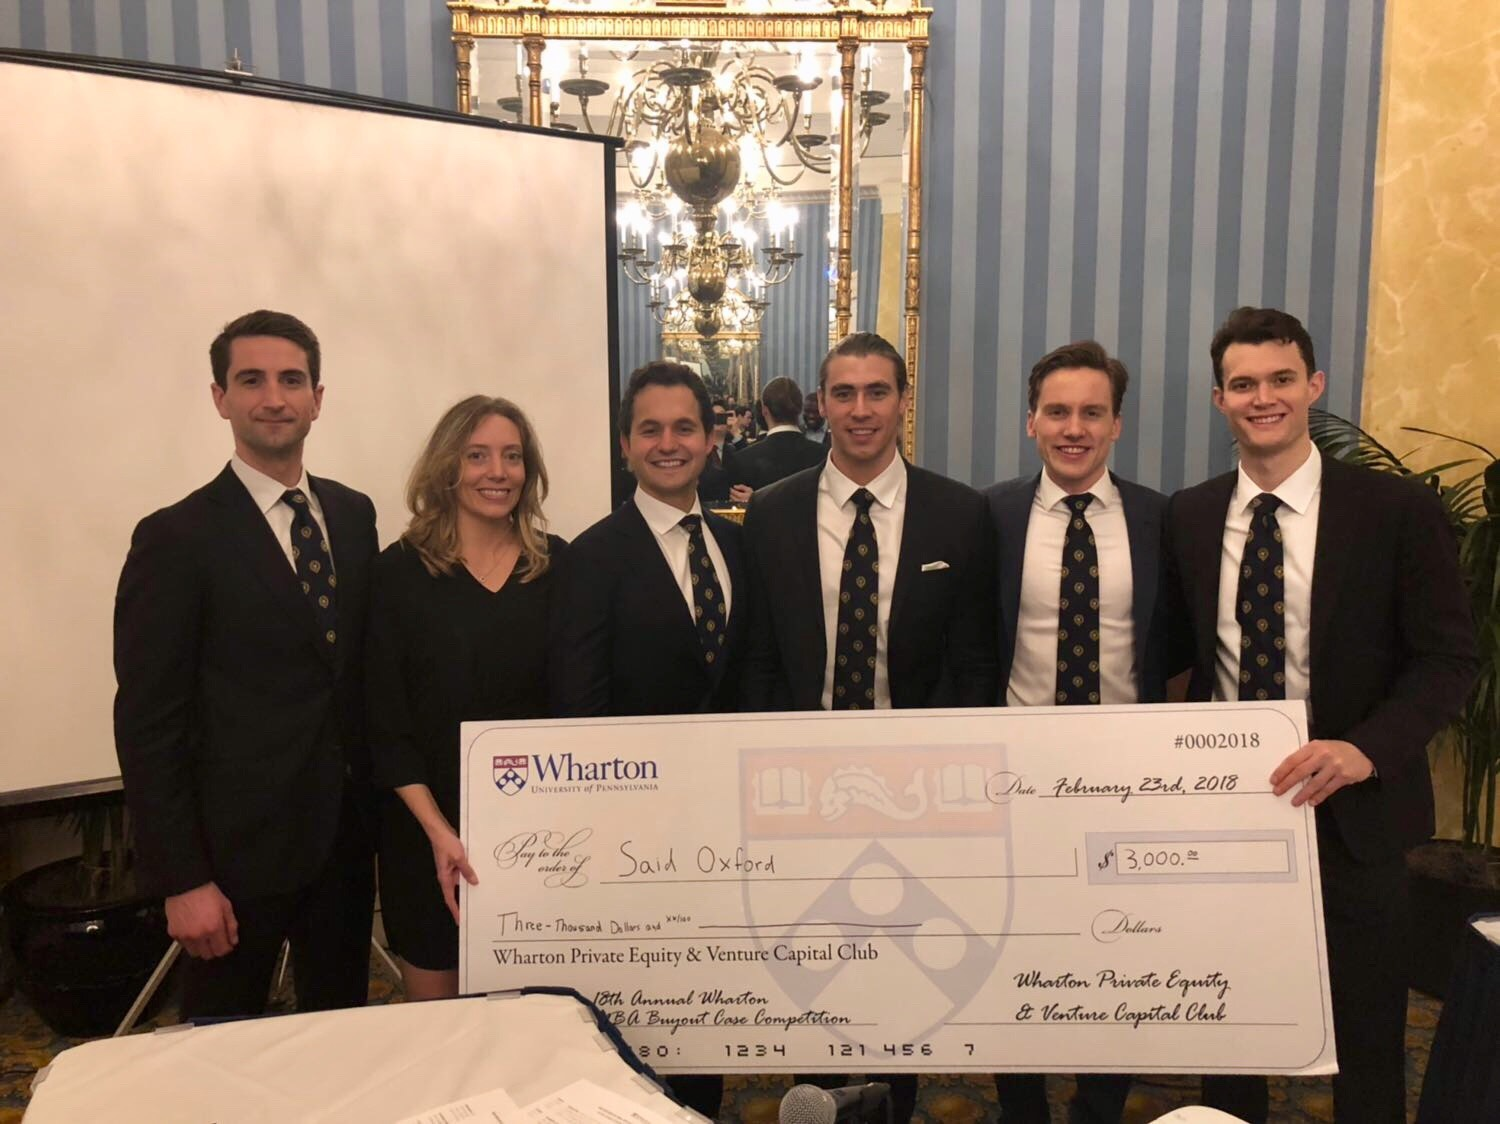 The Oxford team, winners of the 18th Annual Wharton MBA Private Equity Buyout Case Competition